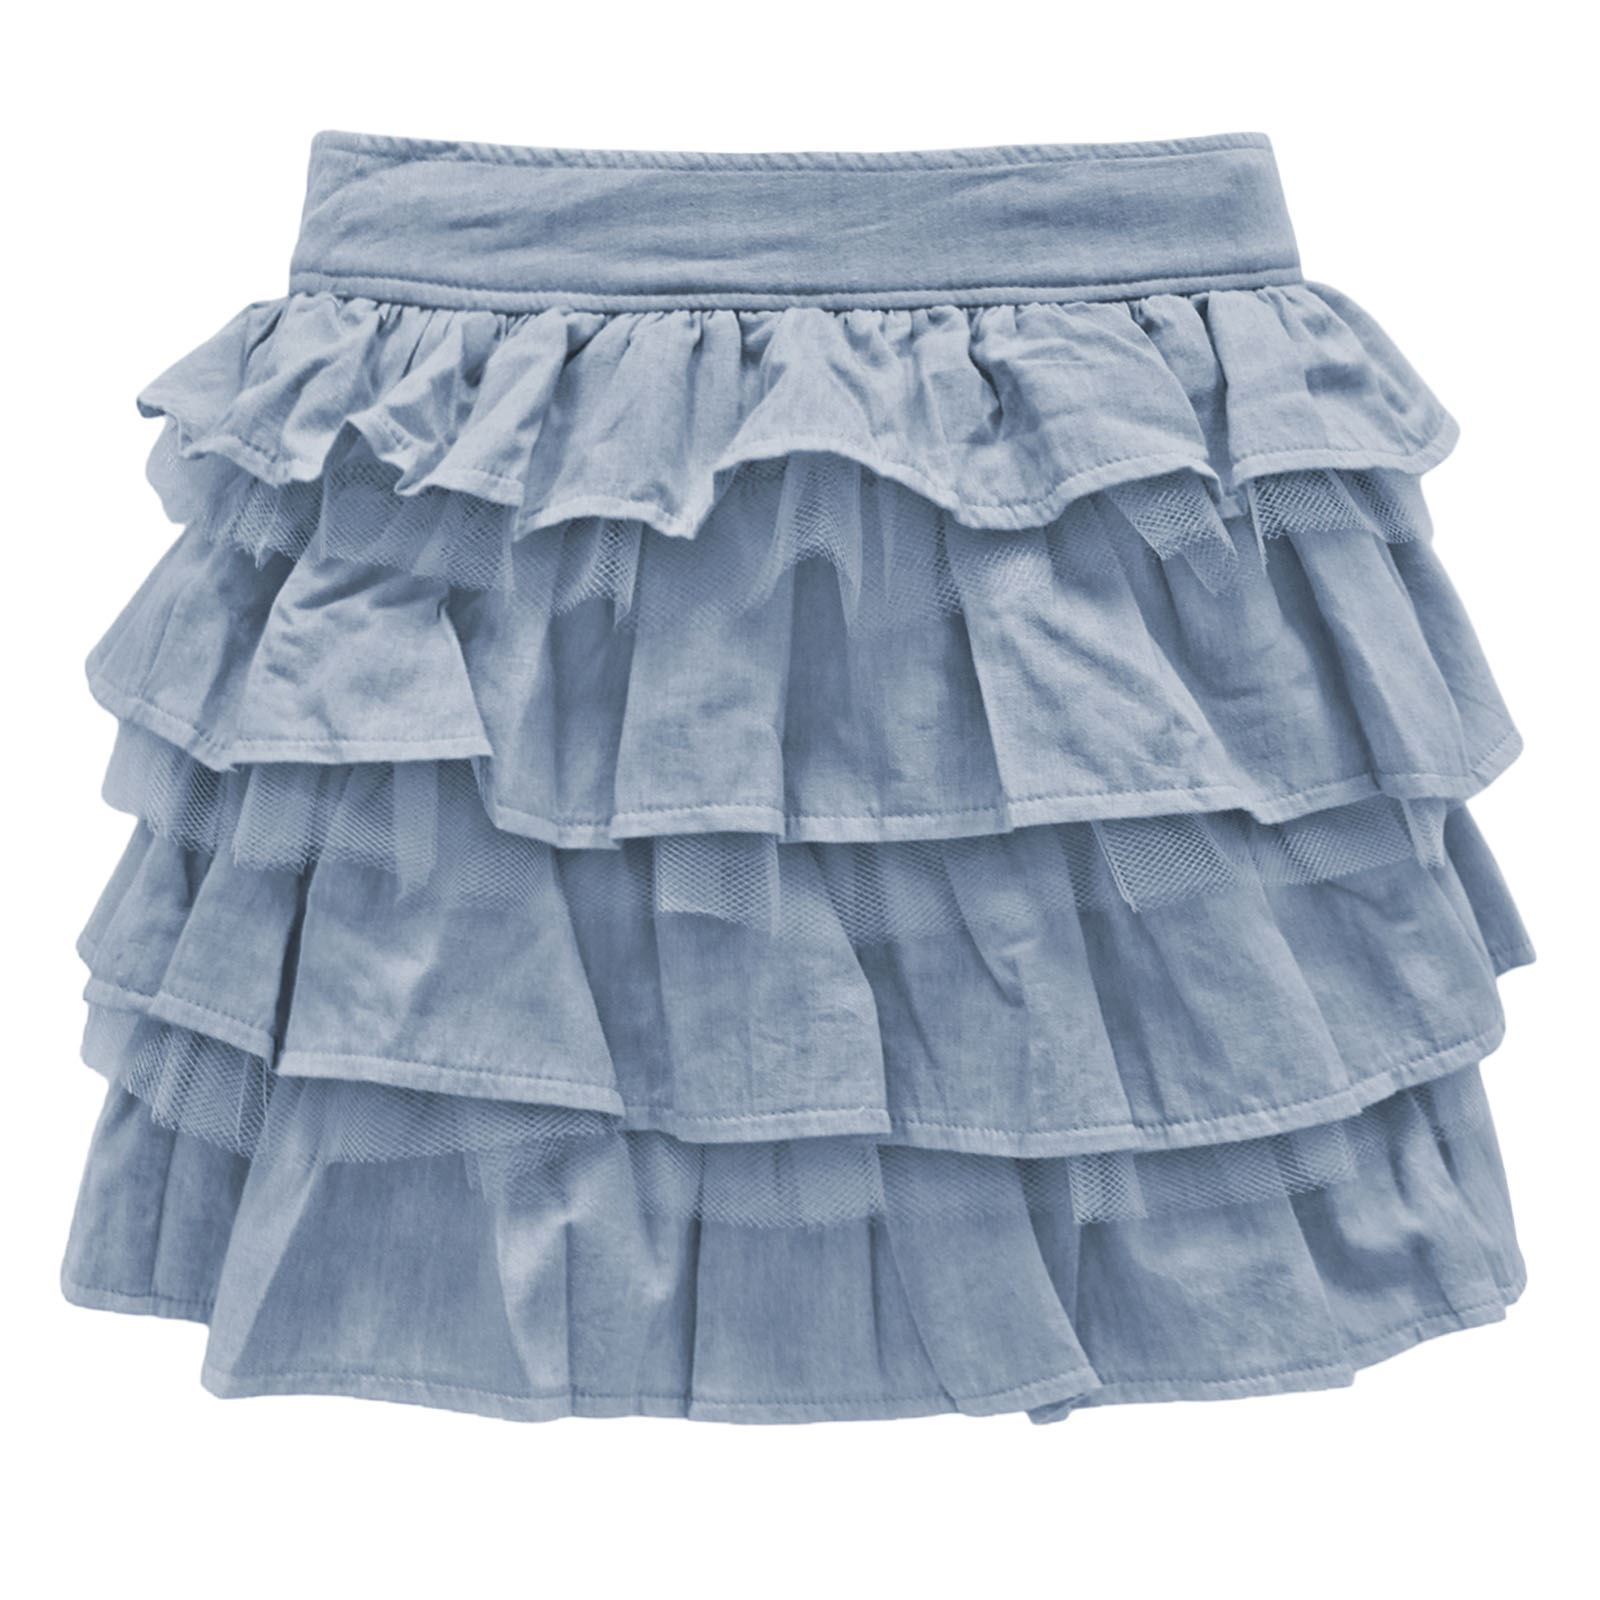 new ruffle denim skirts womens summer